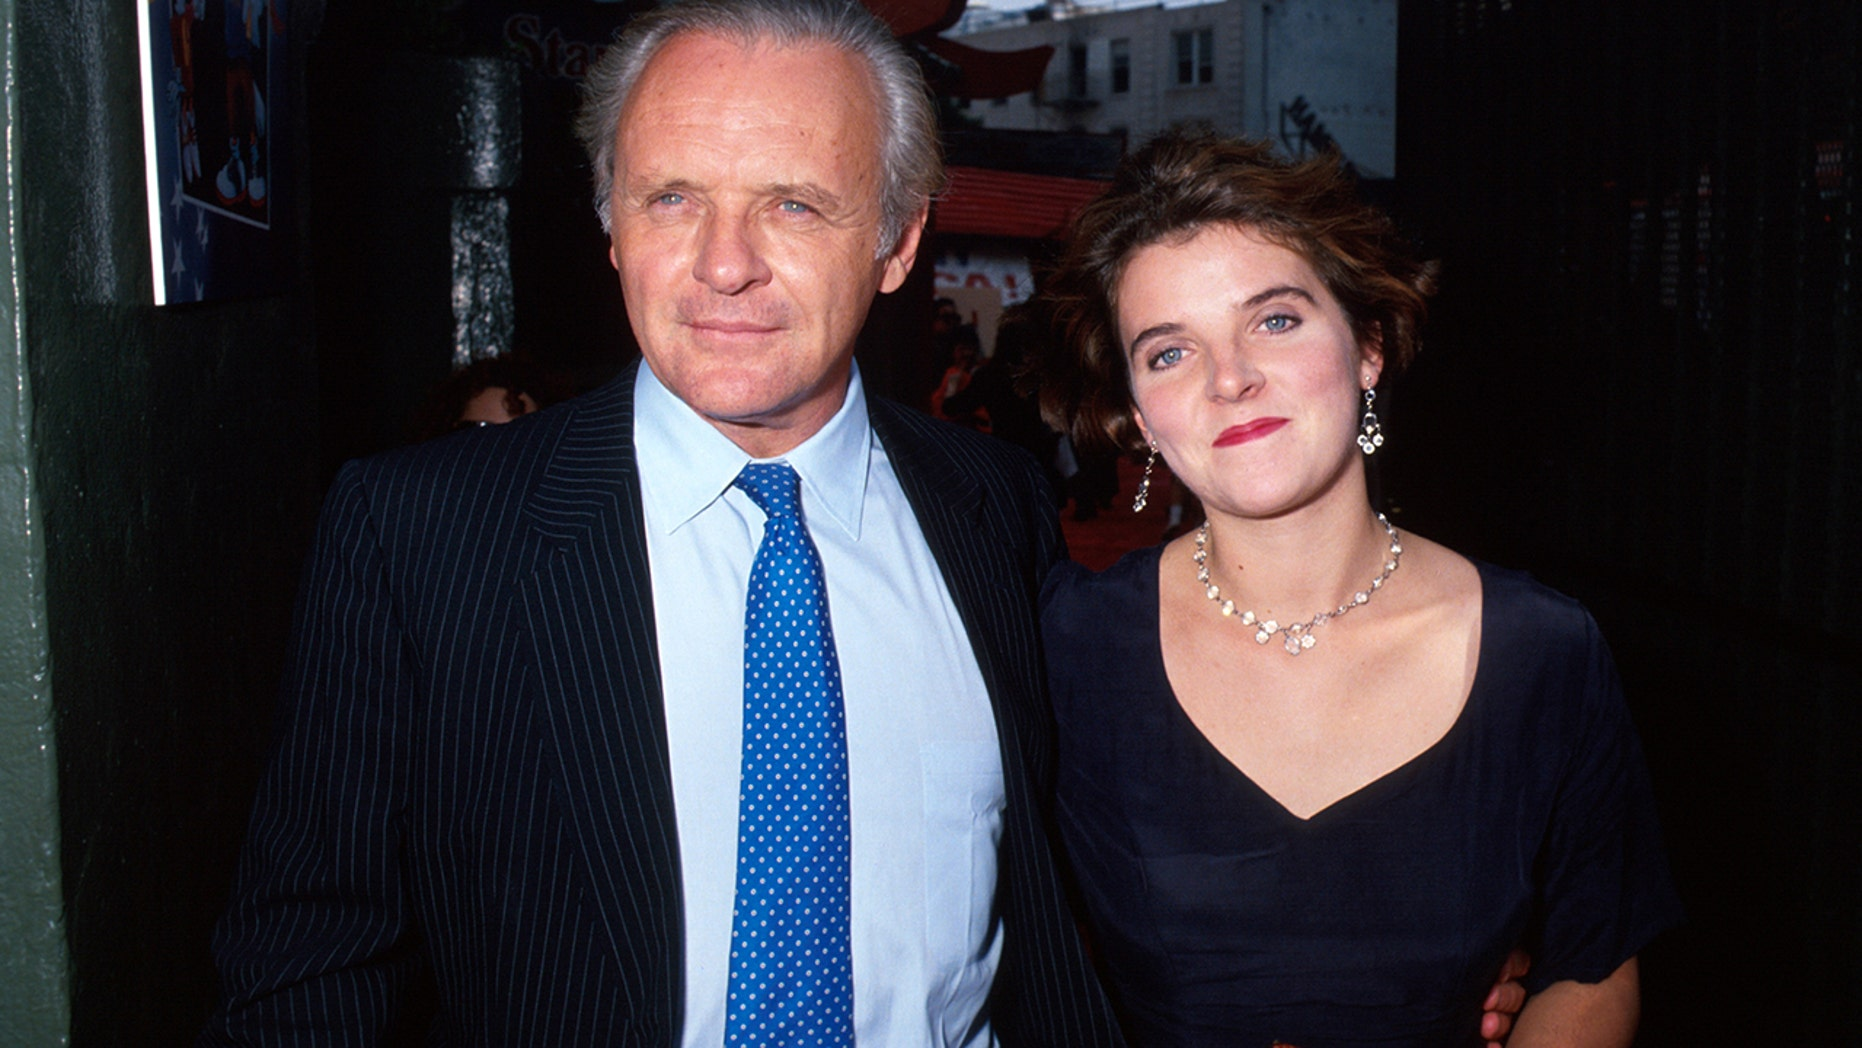 Actor Anthony Hopkins and his daughter Abigail pictured here in 1991. The father-and-daughter duo have been estranged for 20 years.